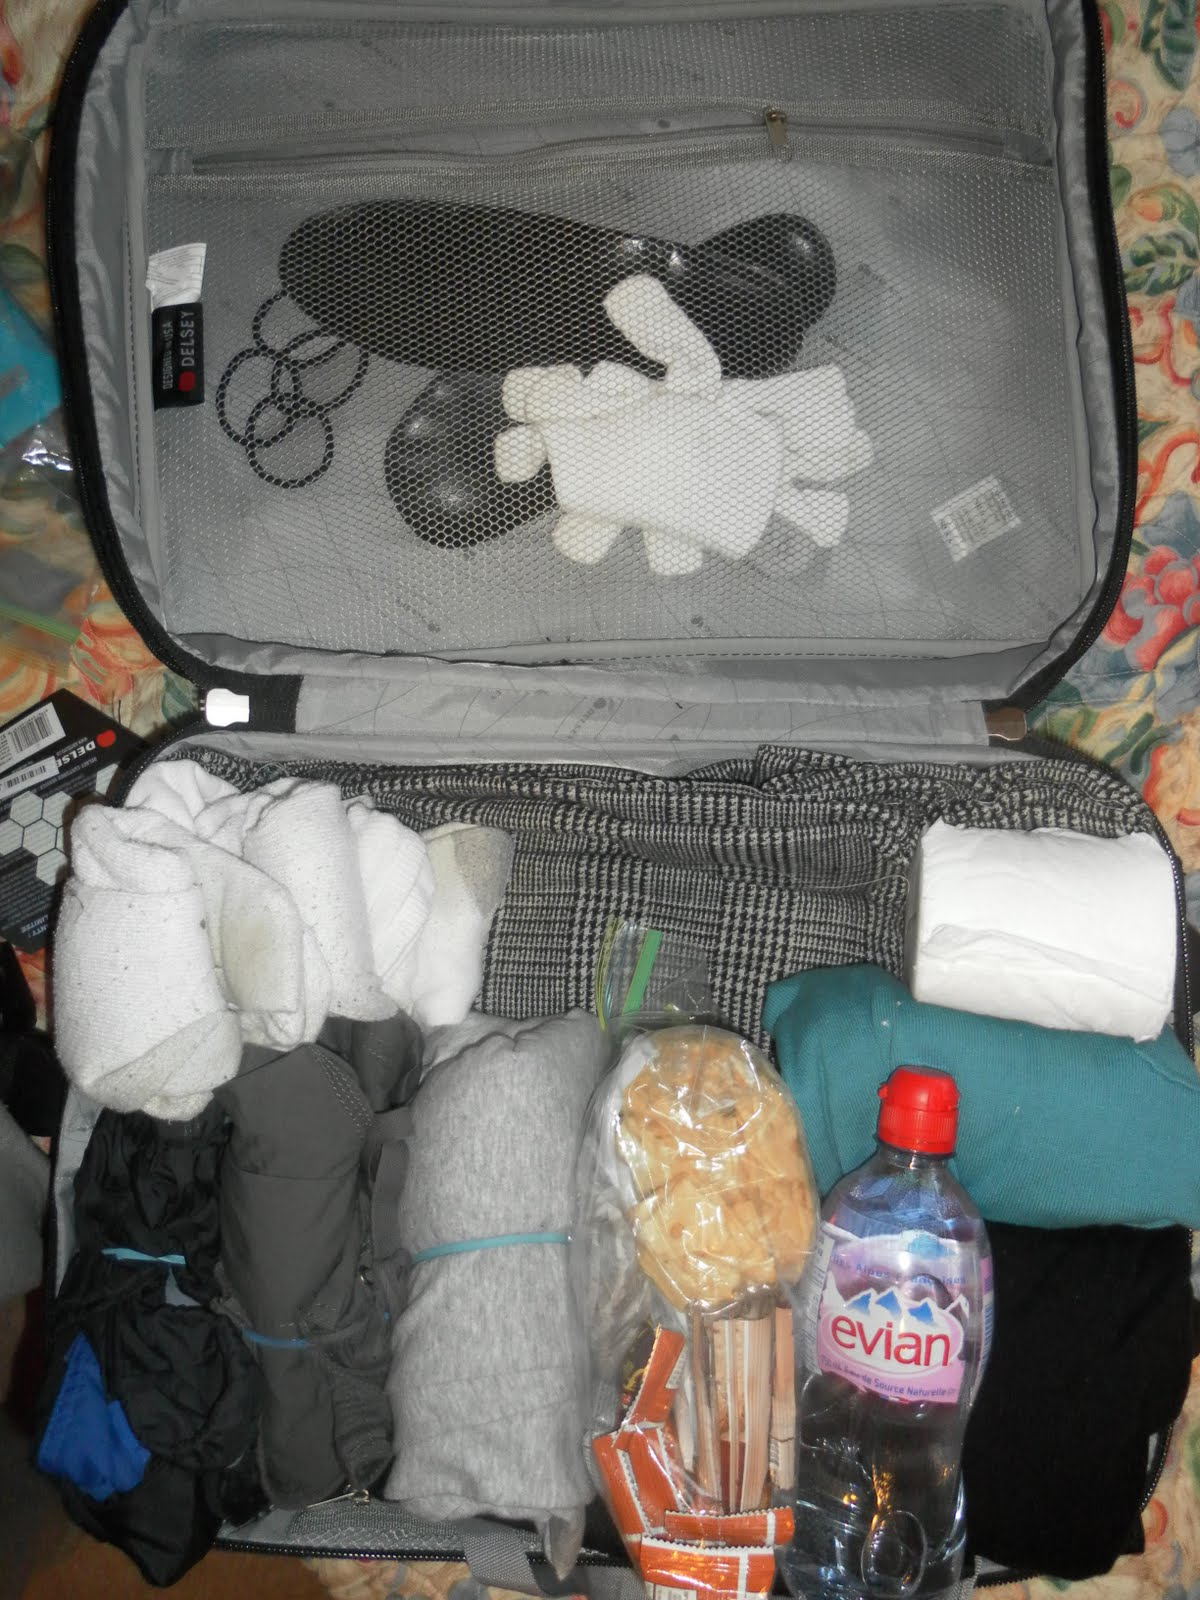 Peru Travel Tips 101: How To Pack A Lot and The Essentials